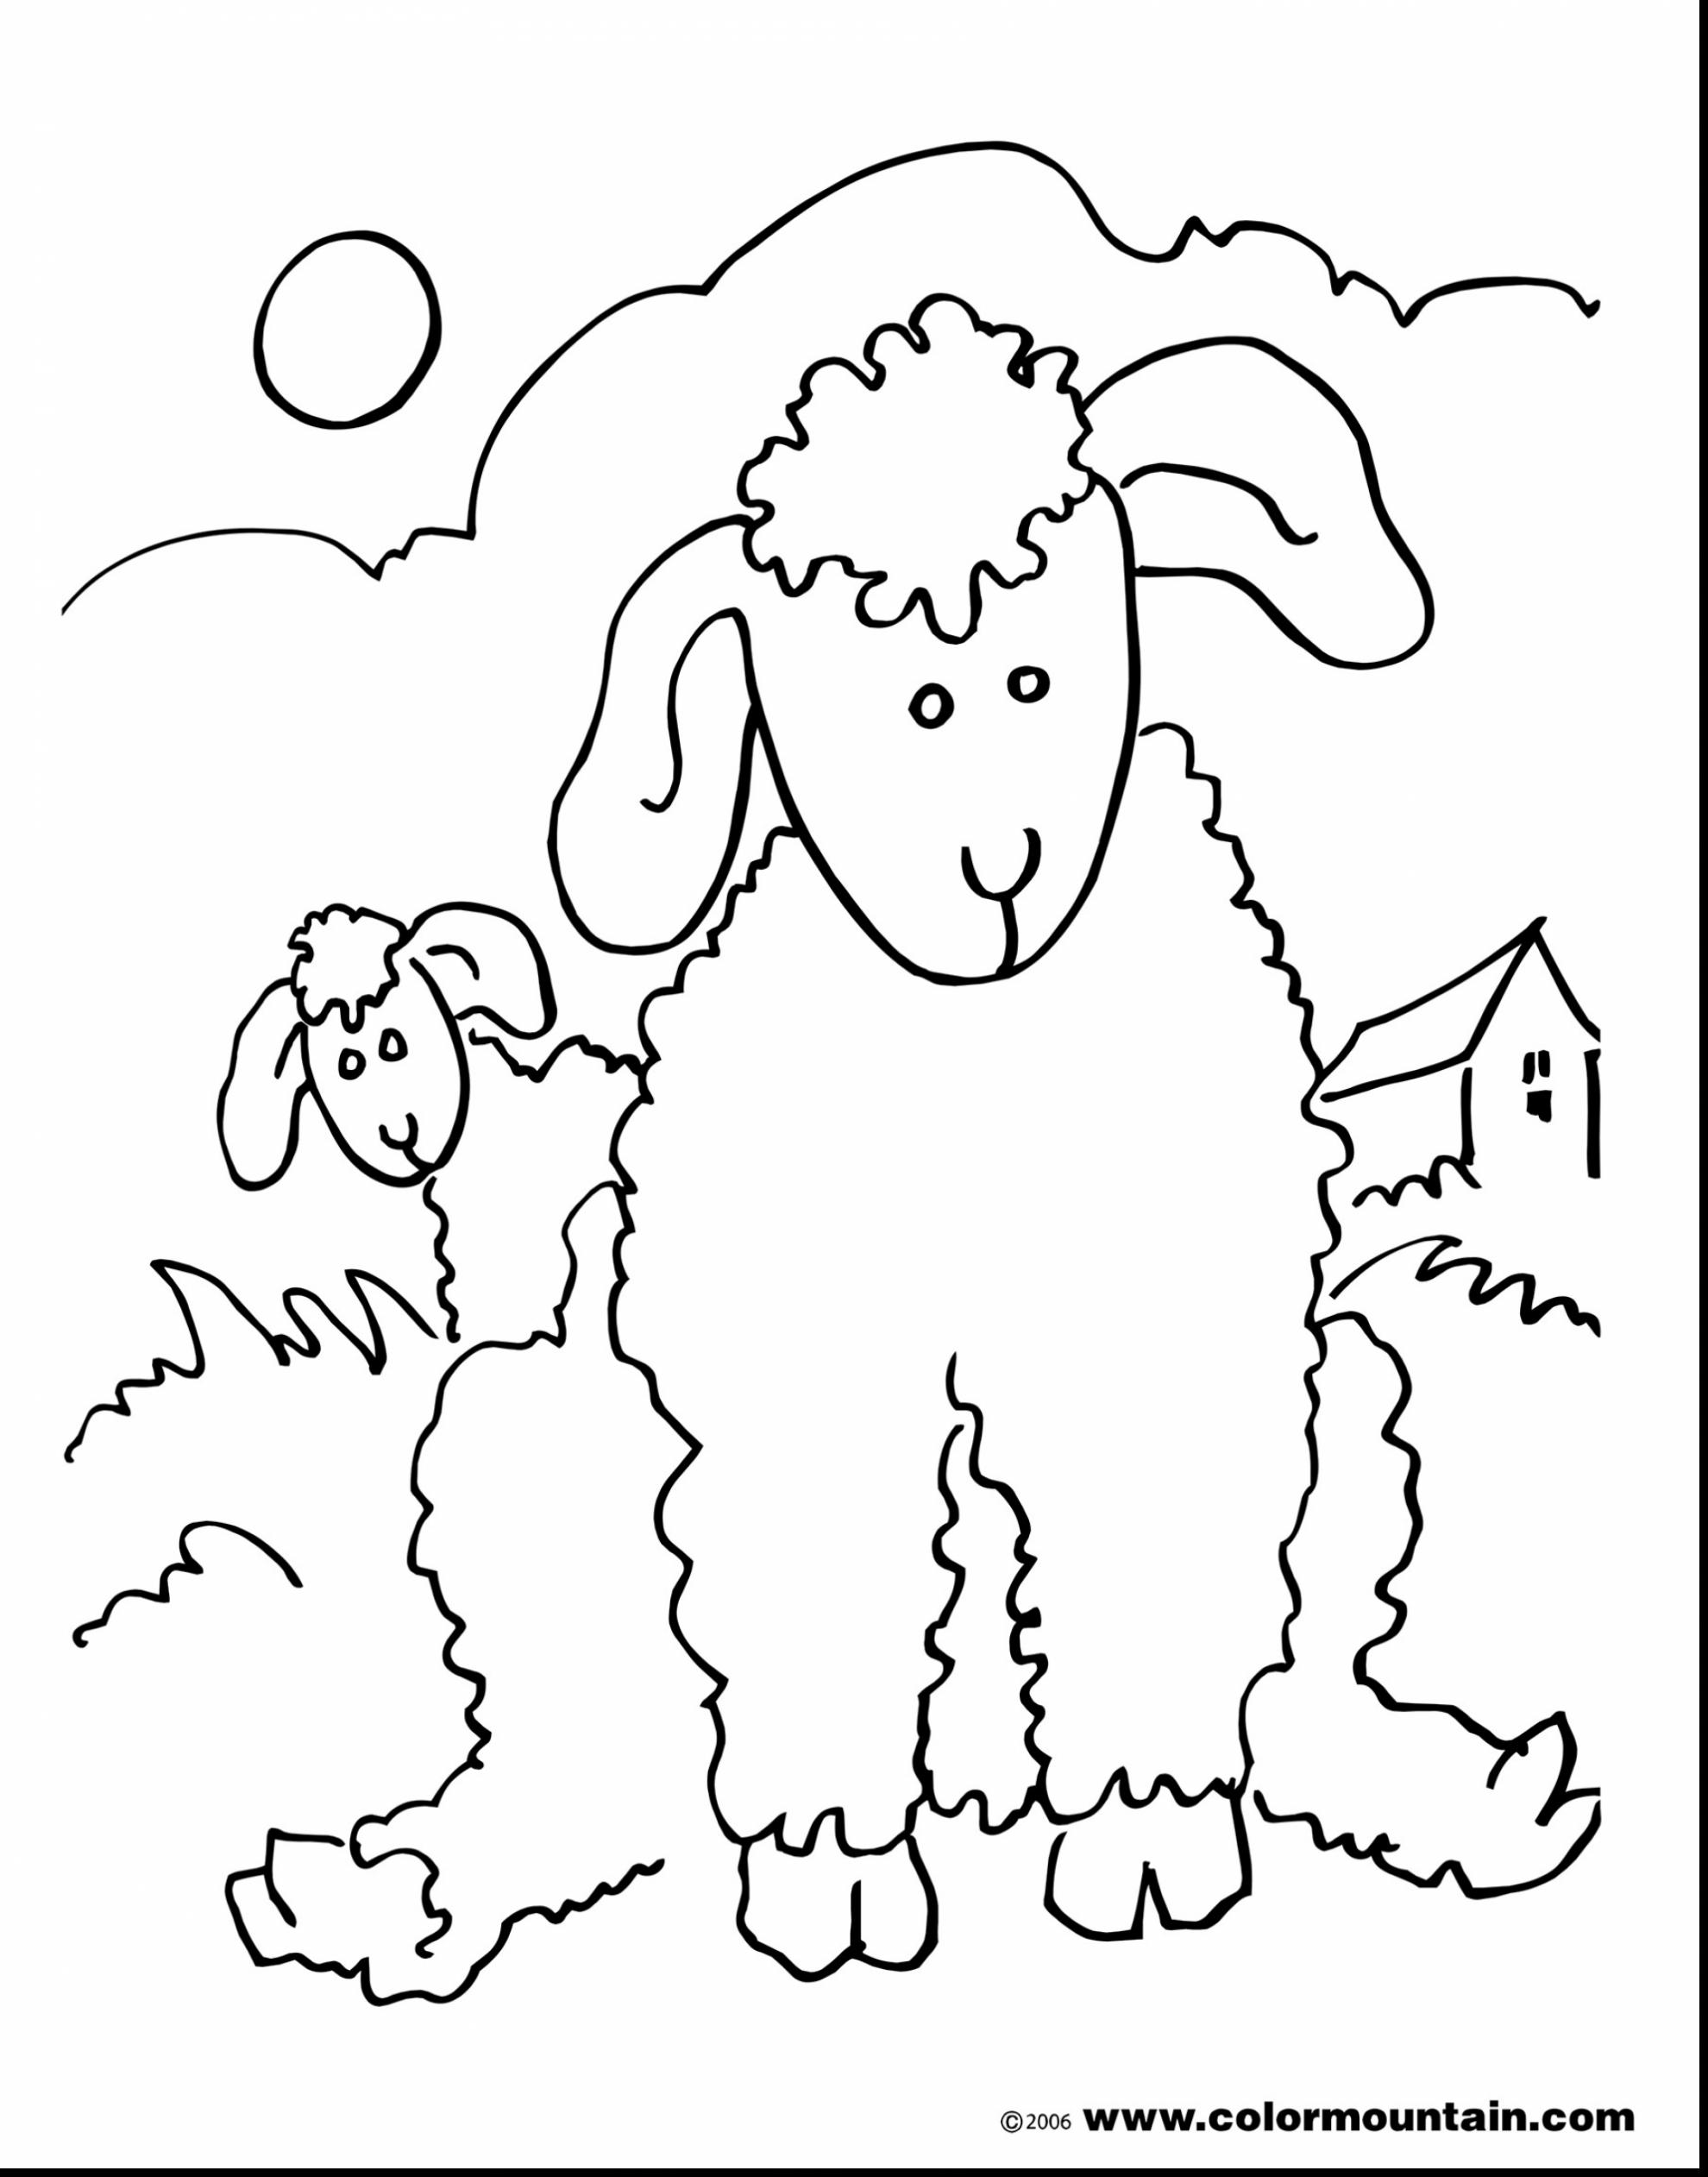 lion and lamb coloring page lion and lamb coloring page page lion and lamb coloring